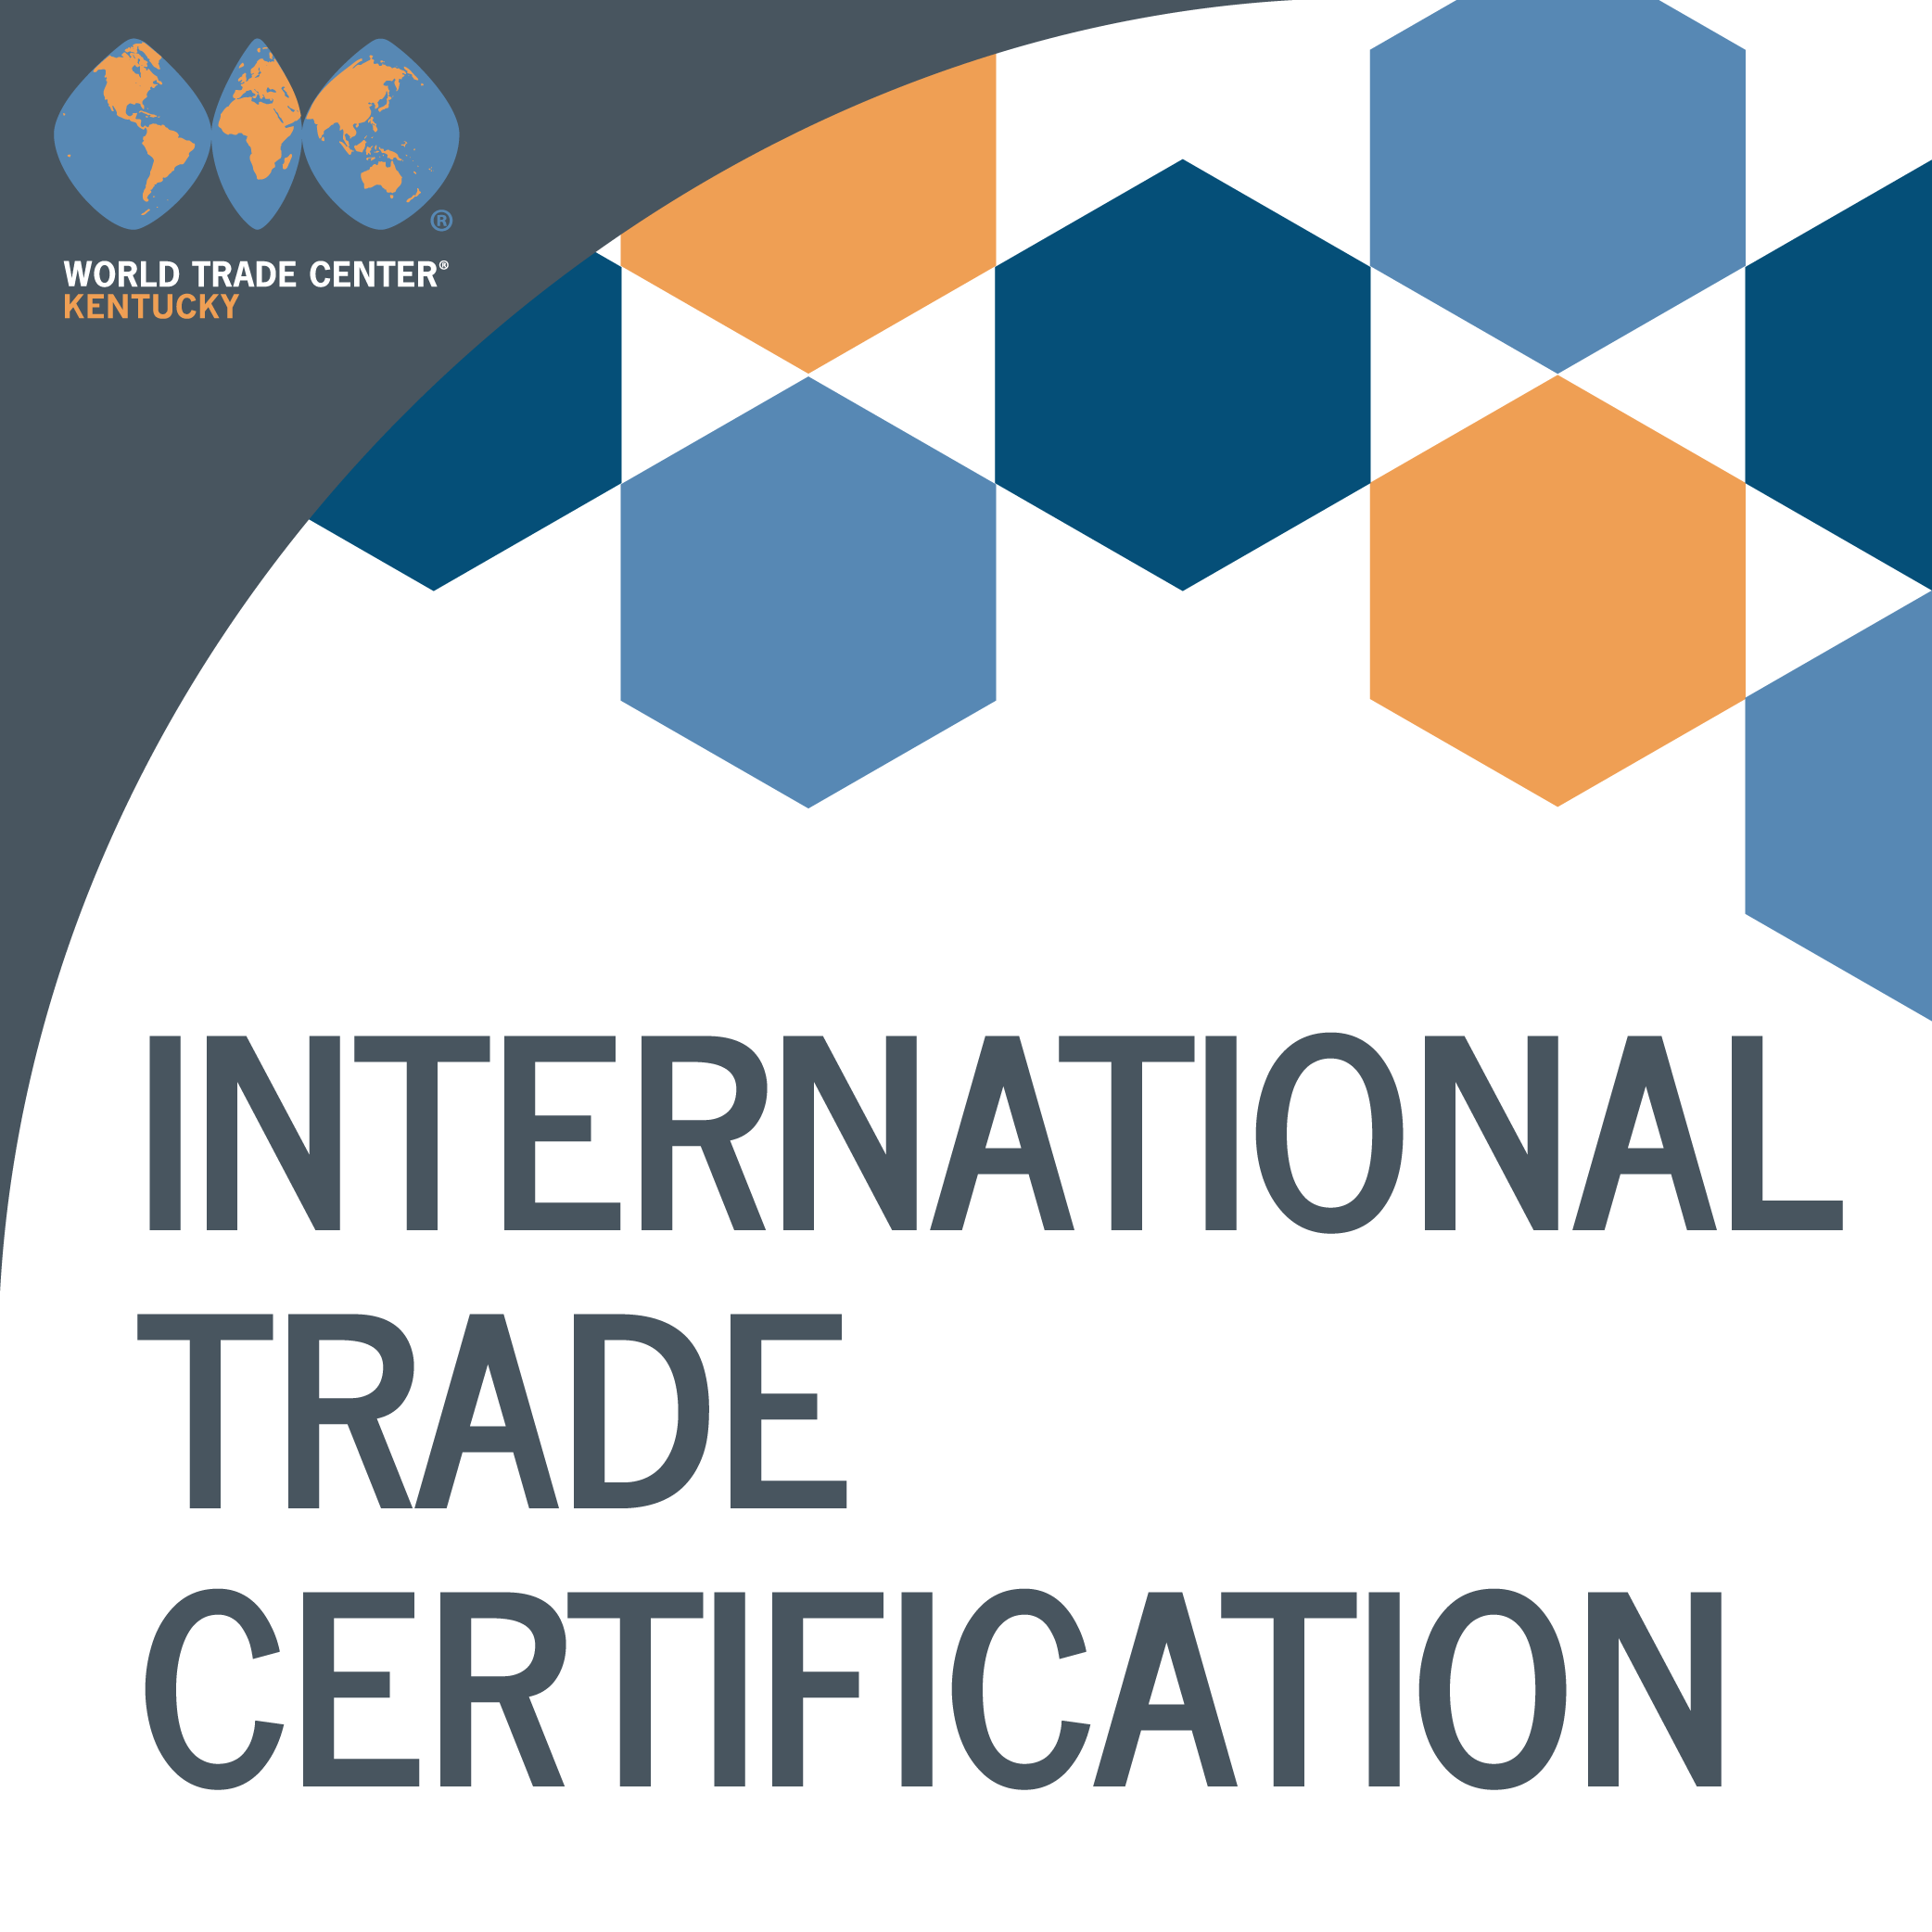 International Trade Certification